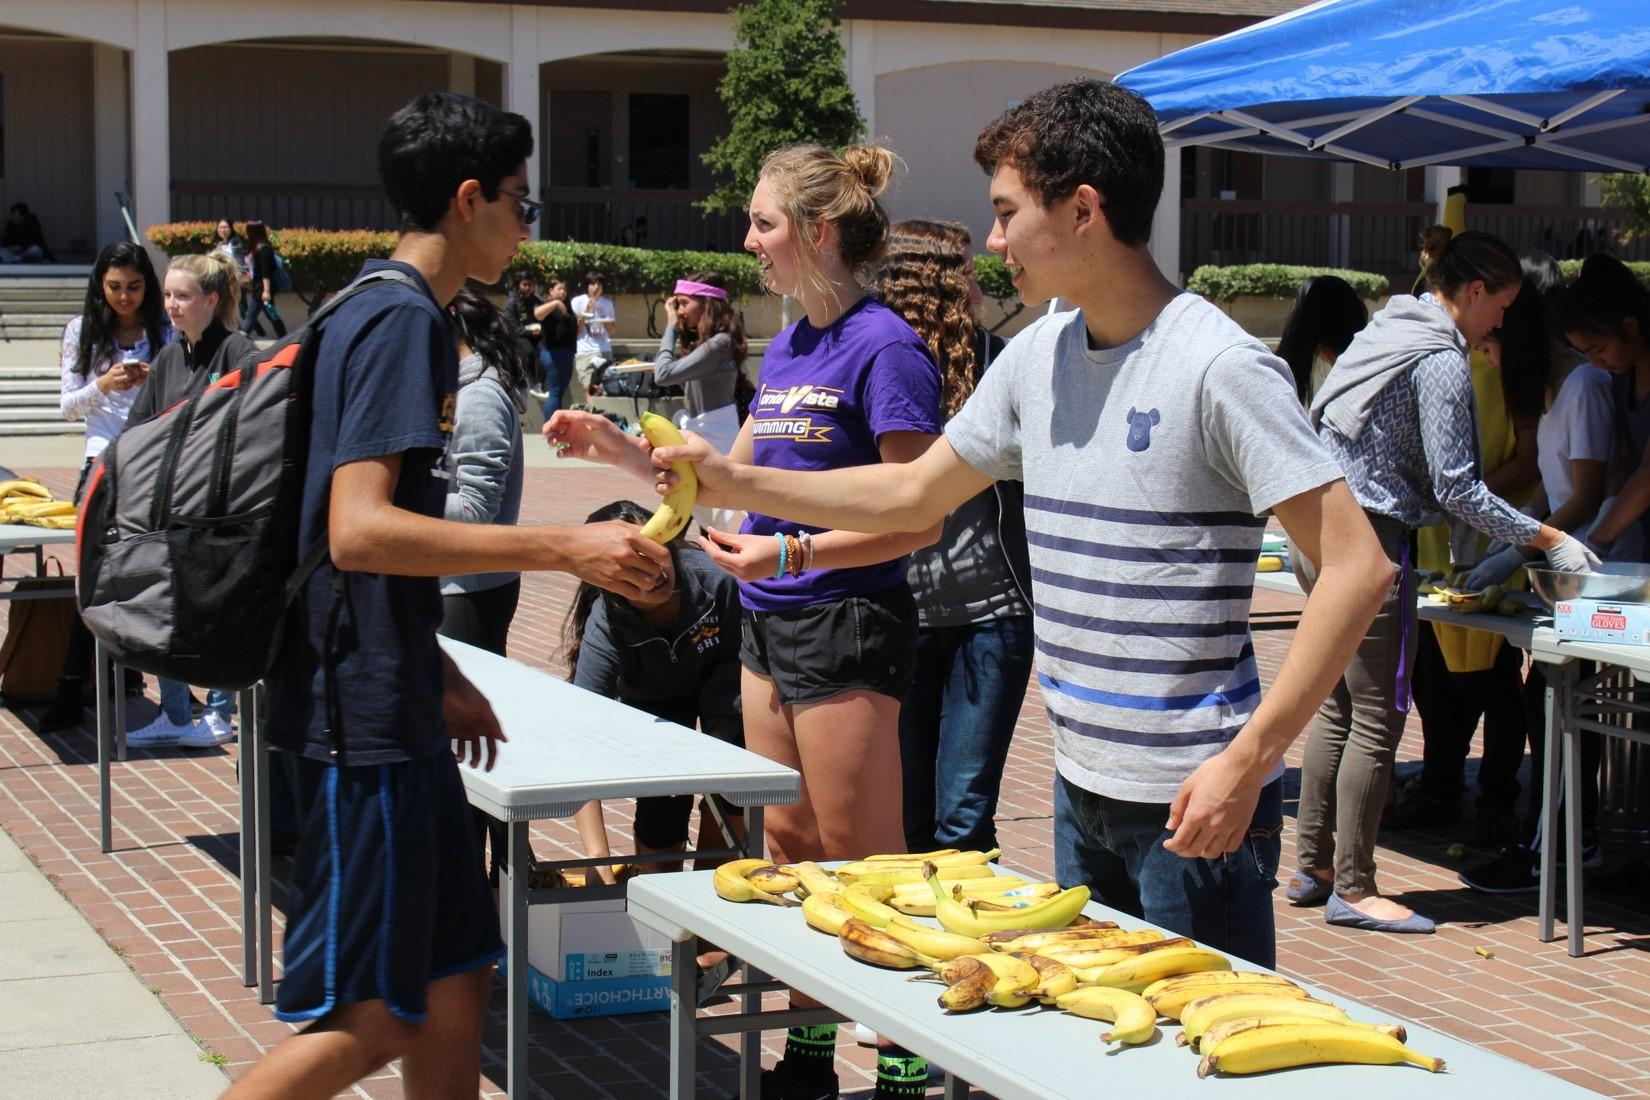 Junior Alex Maertens helped out with the event.The bananas he was collecting from participating students quickly built up as more and more people arrived.